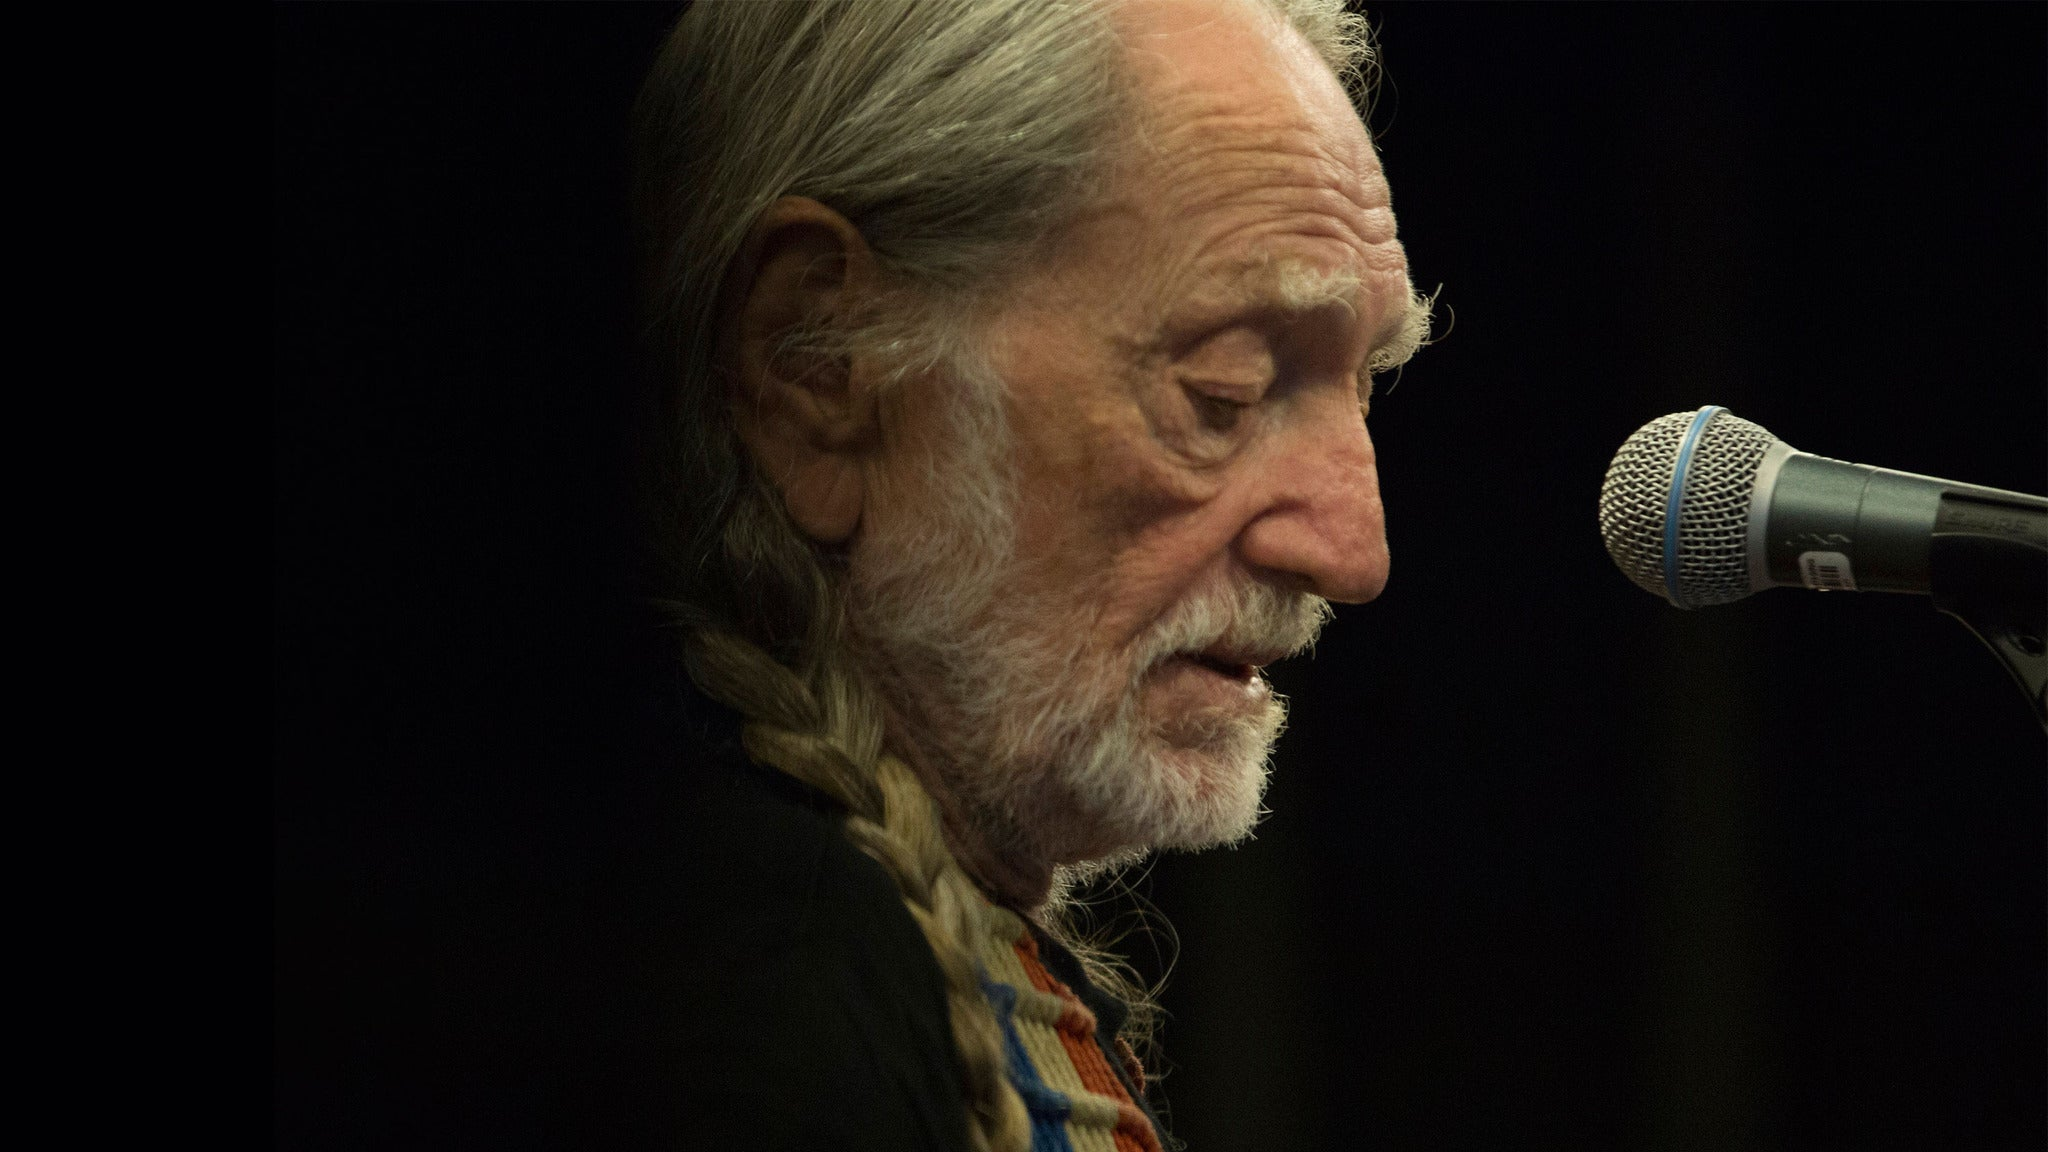 Willie Nelson & Family at The Fillmore - San Francisco, CA 94115